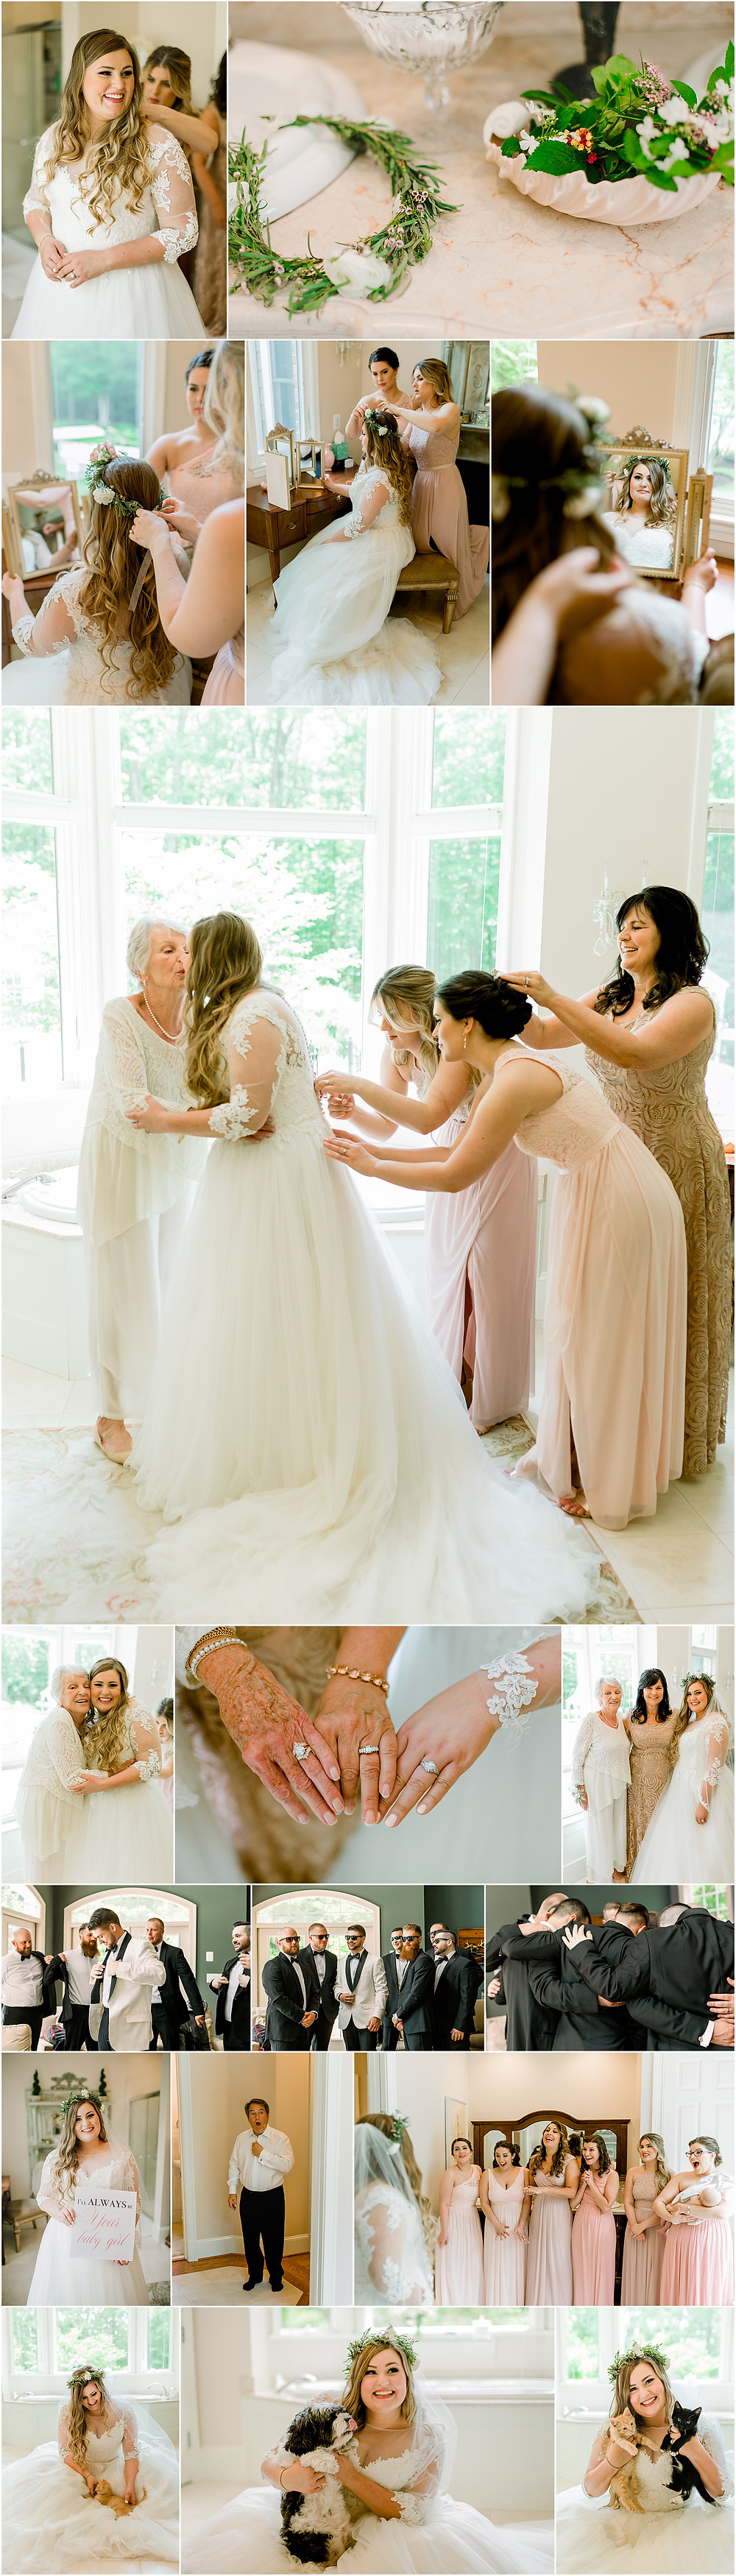 Generational Moments as Bride gets ready. Bridal Kittens and Puppies. First Look with Dad. Flower Crown Bride